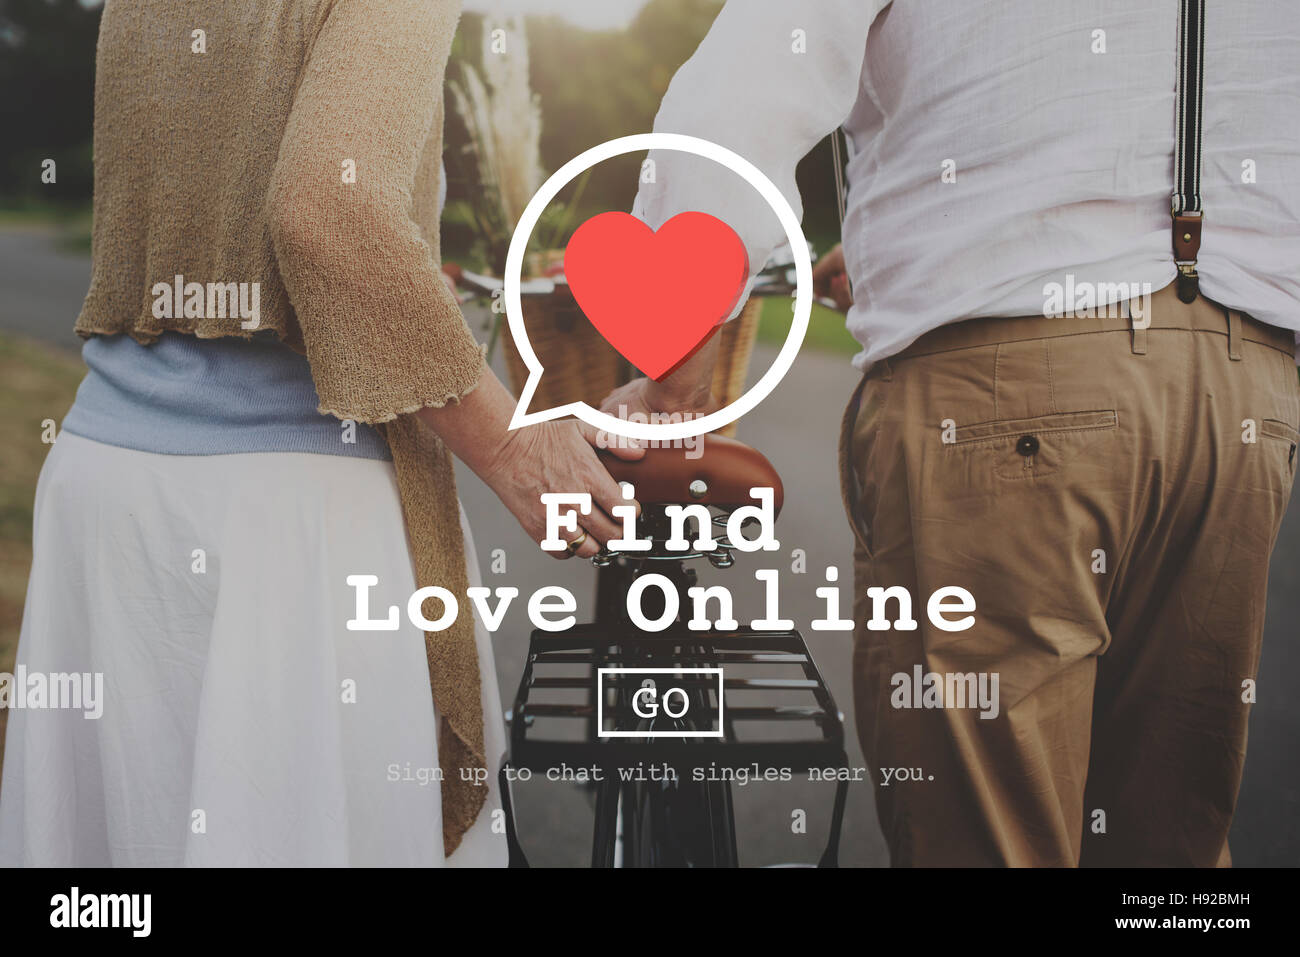 can you find love online dating Hate the single life but hate online dating even more that doesn't mean you just give up on finding love take a look at your social calendar from the past month how proactive have you been lately.